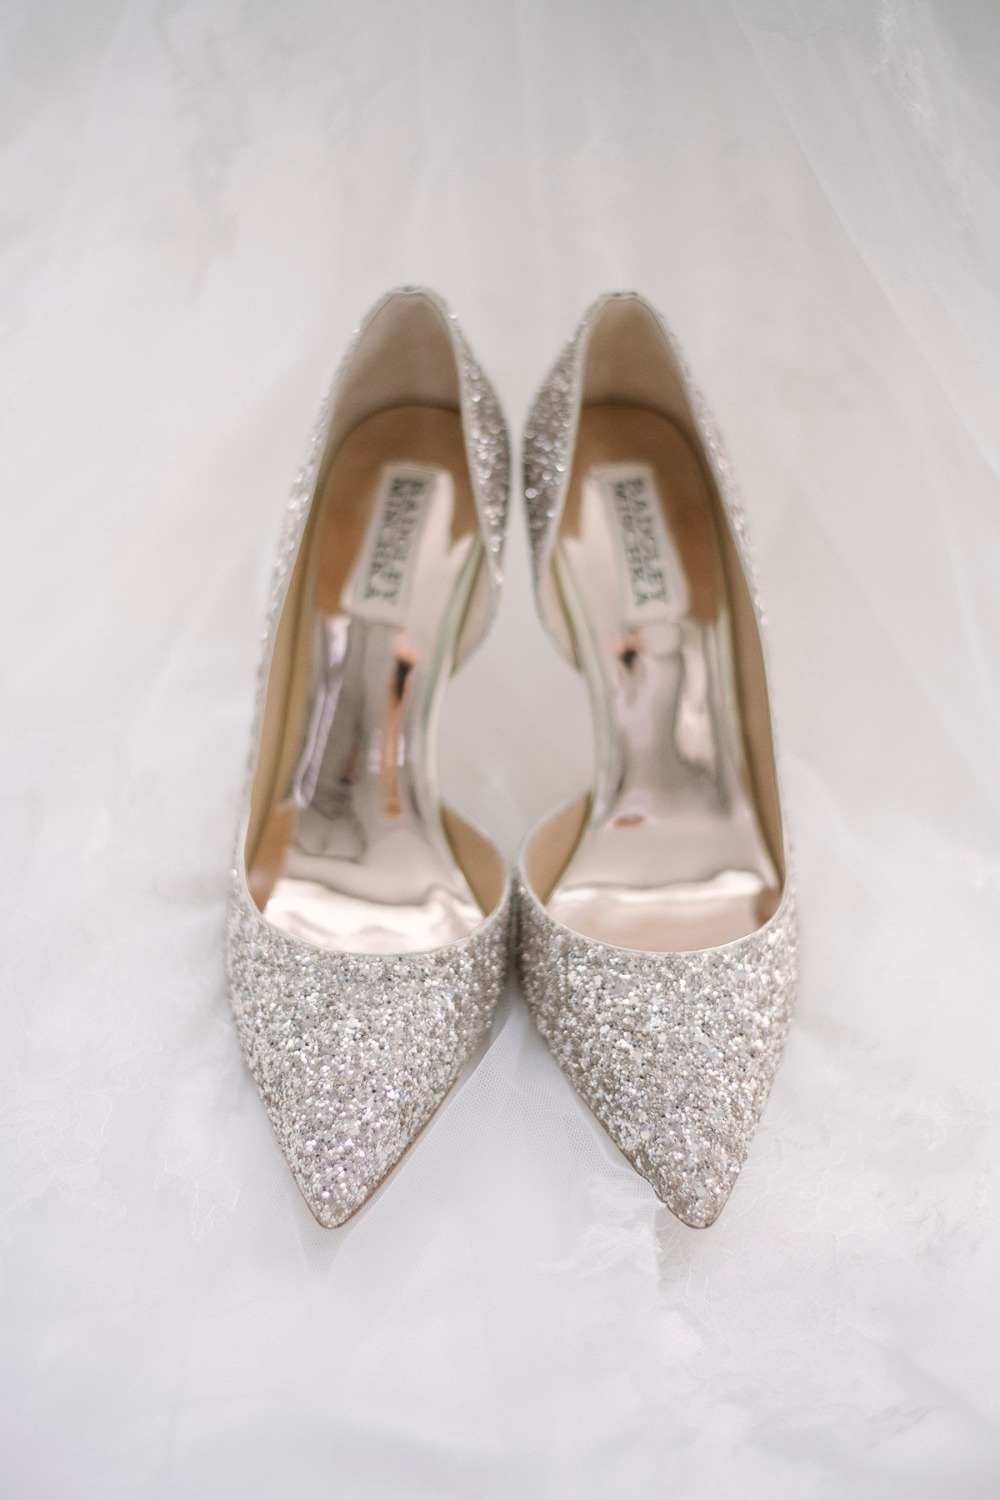 Sparkly wedding heels